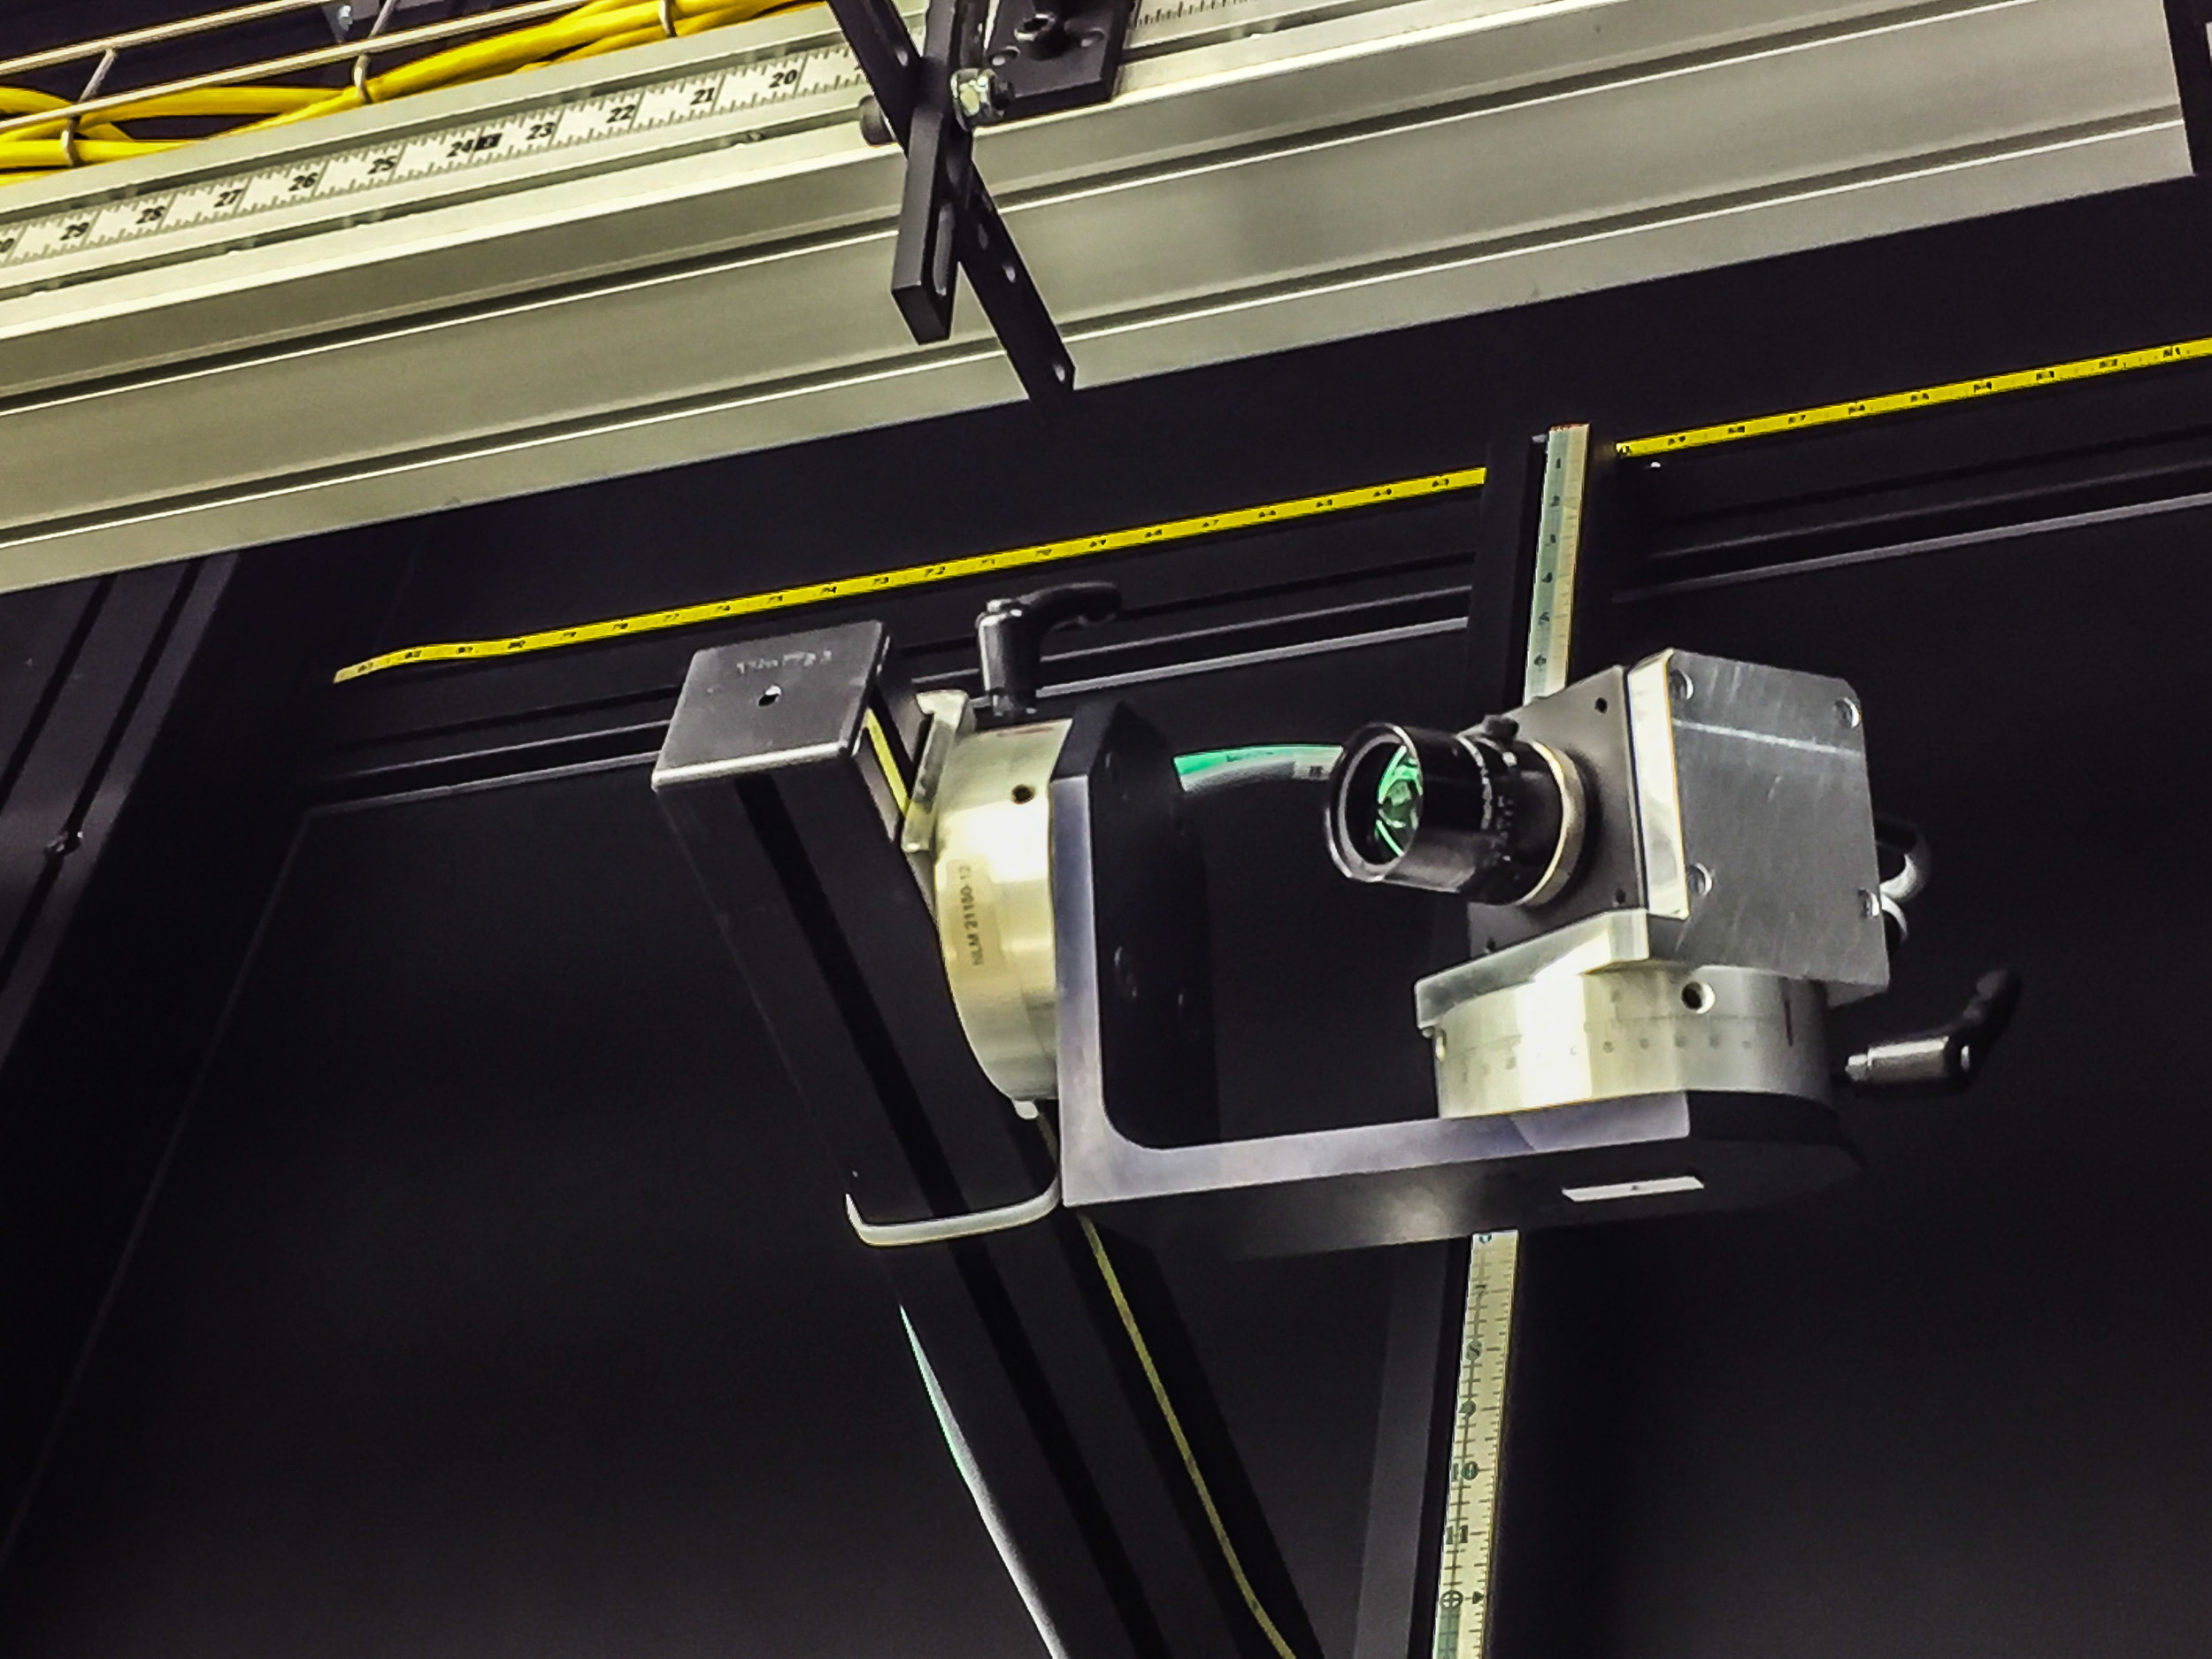 automatic paint defect  Inspection System camera